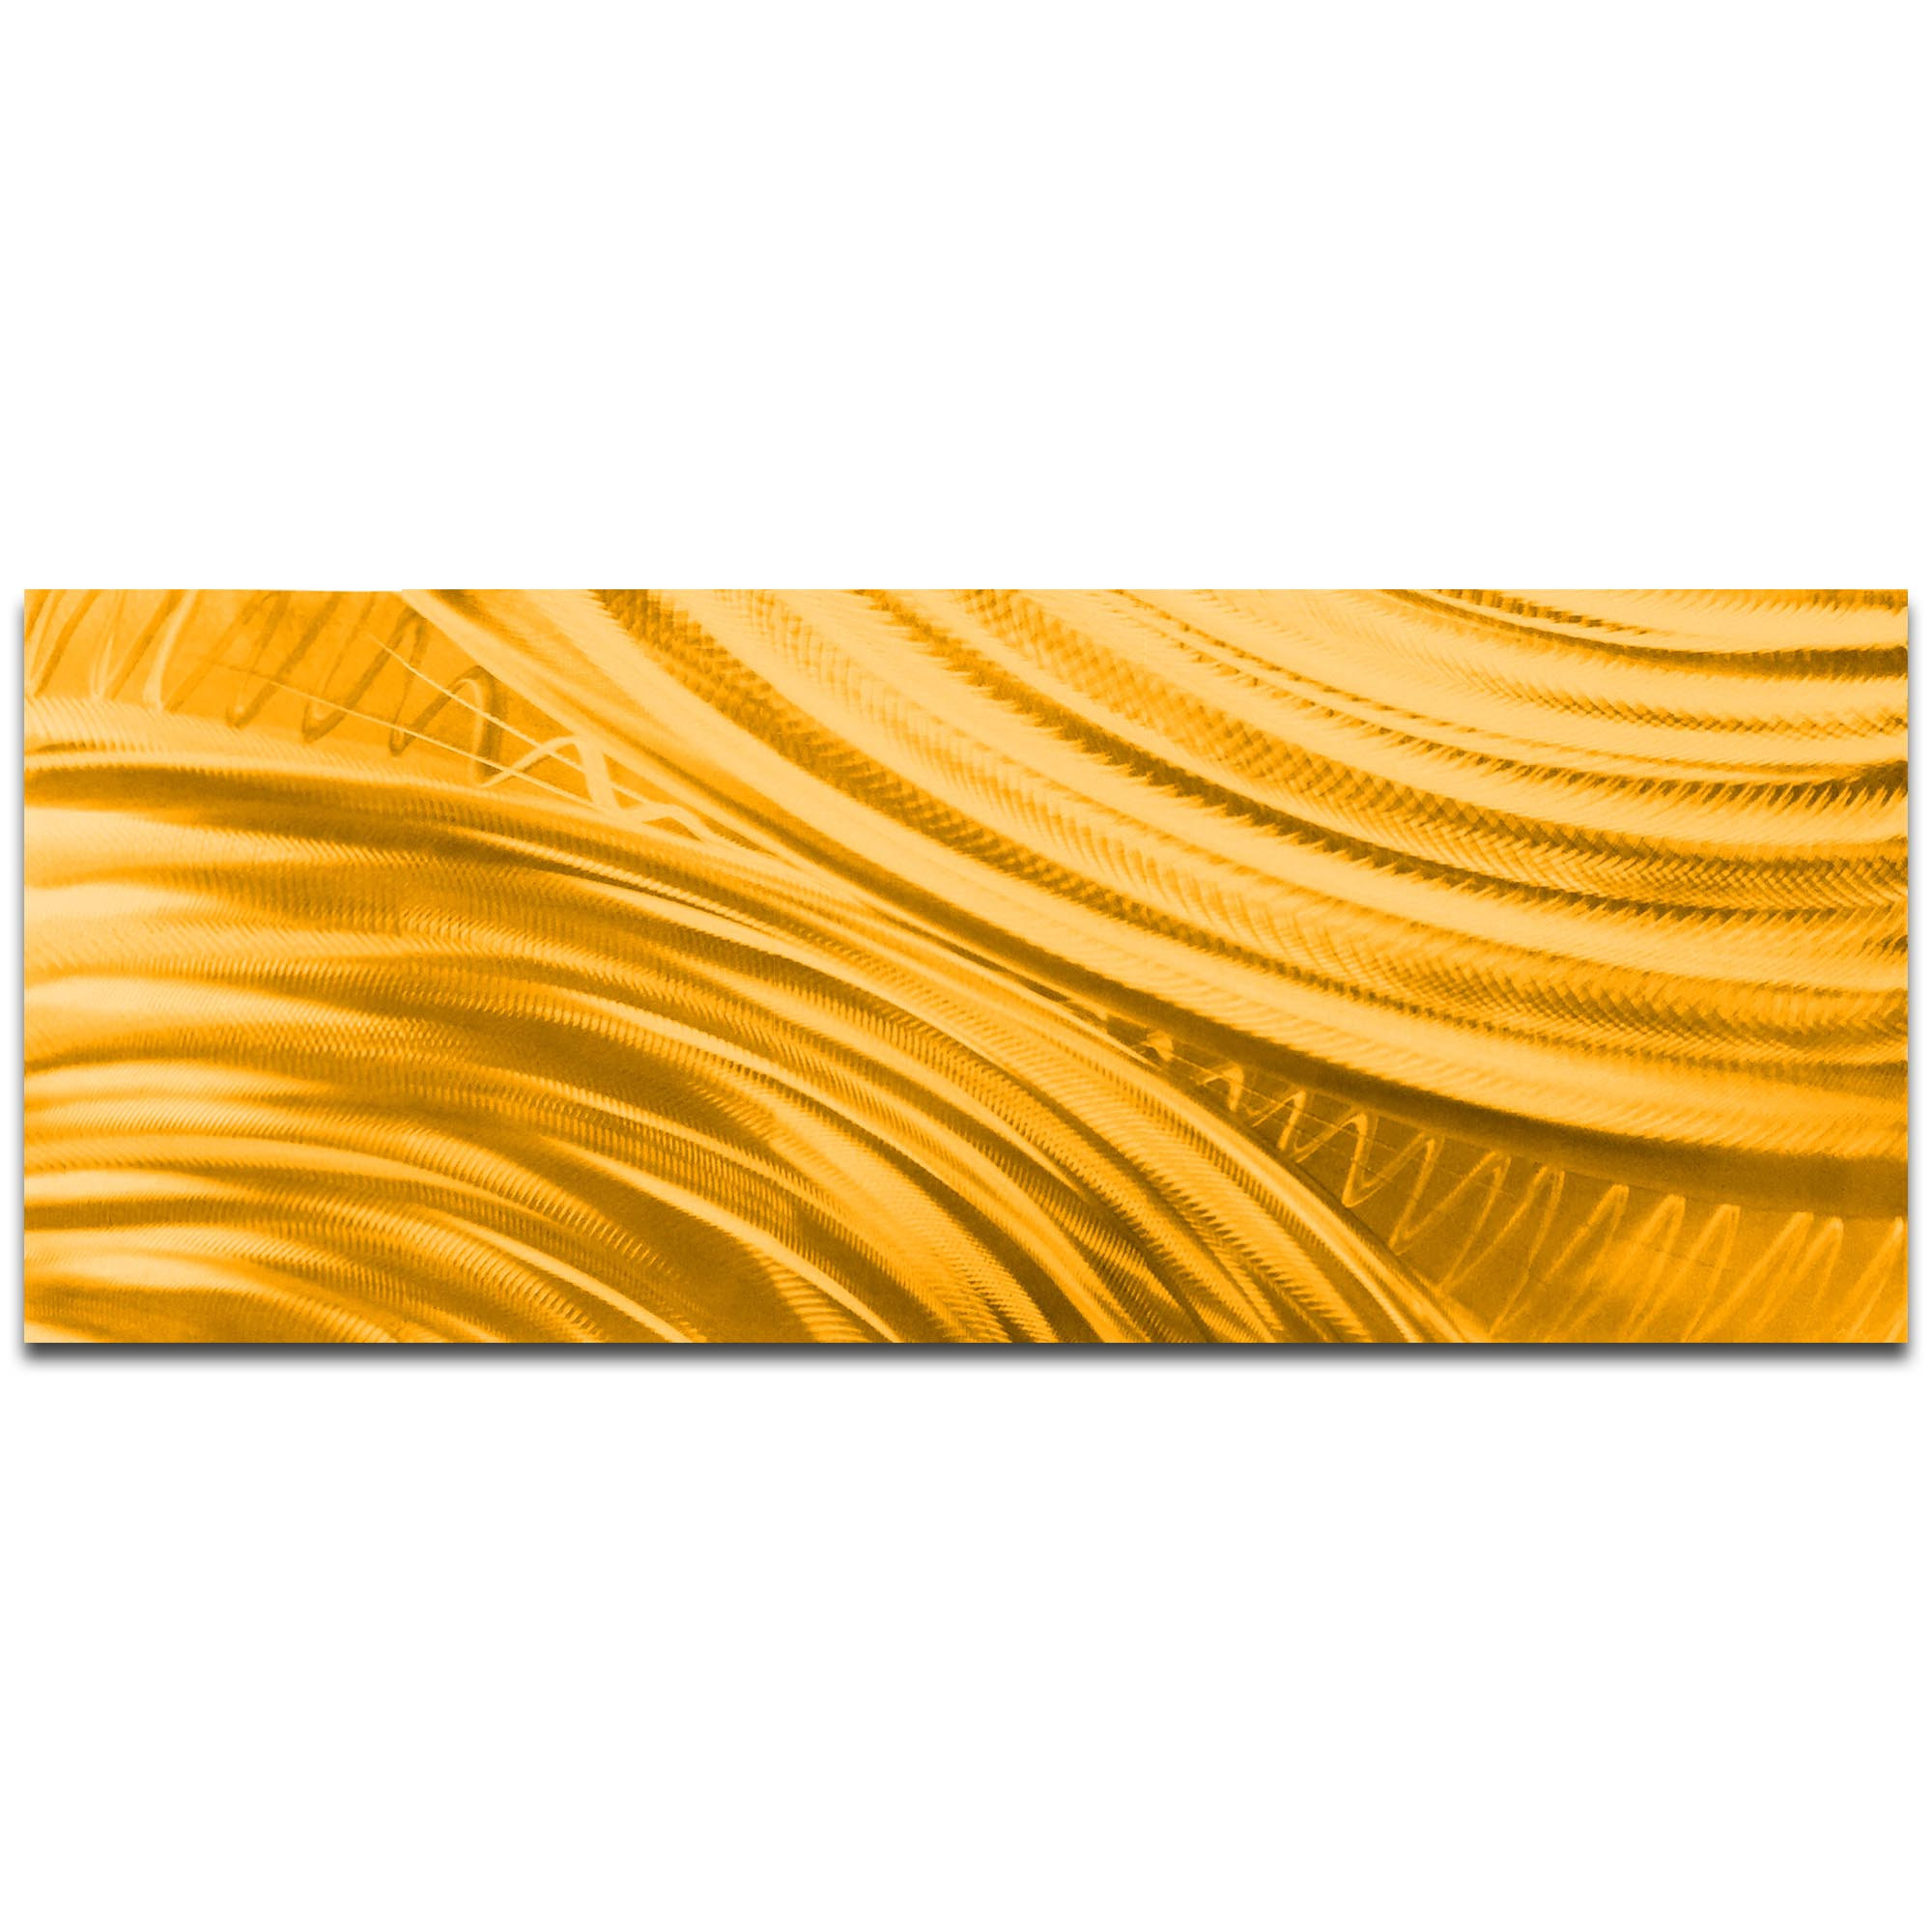 Helena Martin 'Moment of Impact Gold' 60in x 24in Original Abstract Art on Ground and Painted Metal